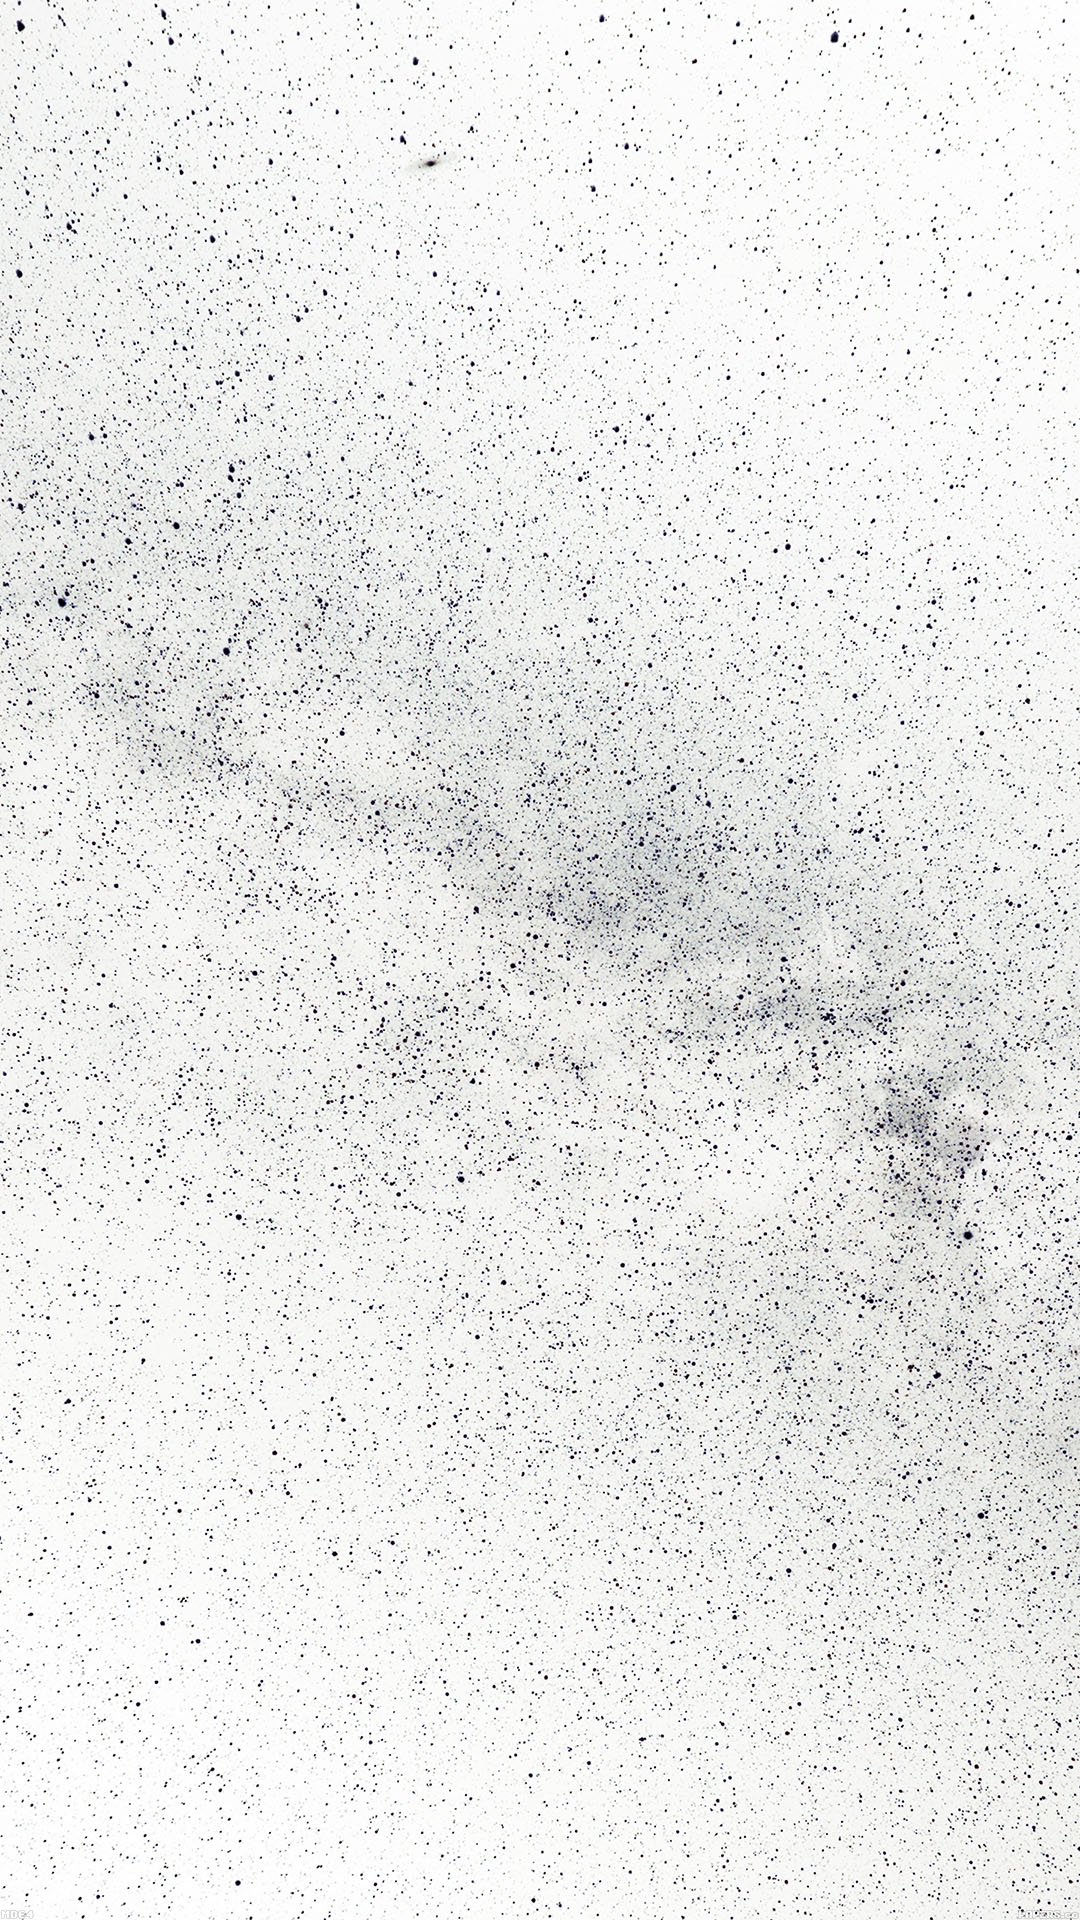 md64-star-white-space-galaxy - Papers.co